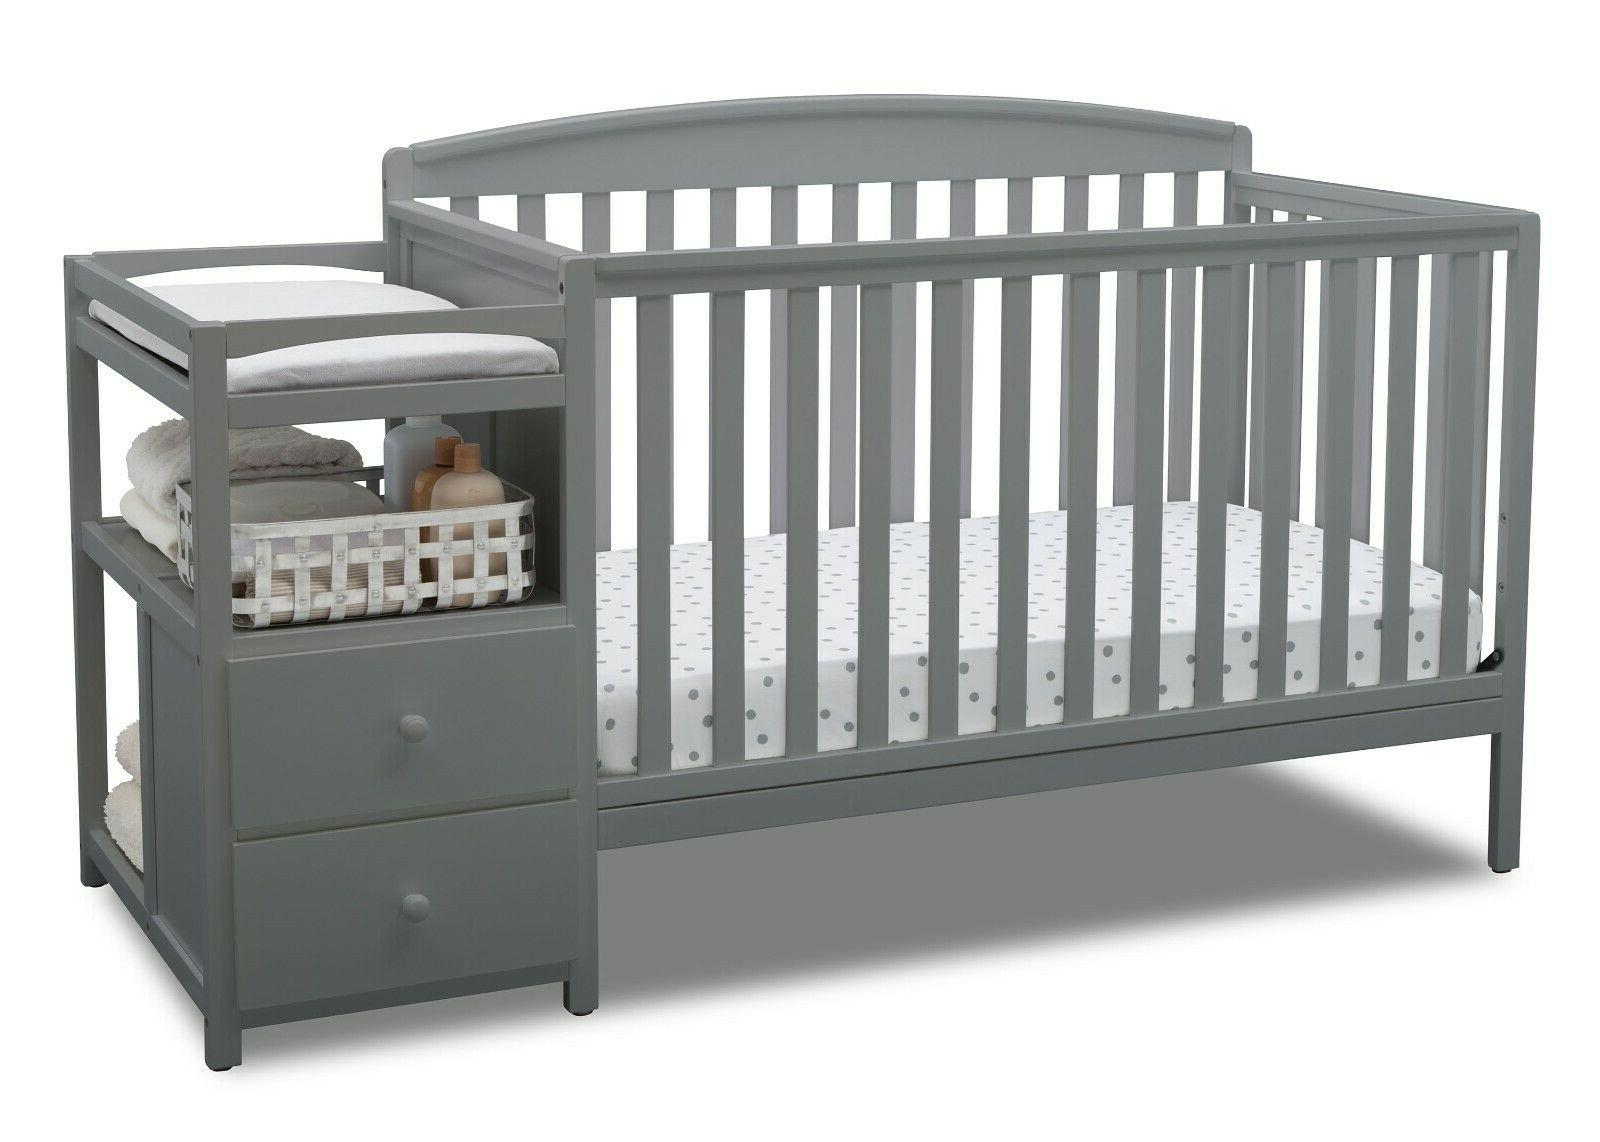 Baby Children Royal 4-in-1 Convertible Changer, GREY BED